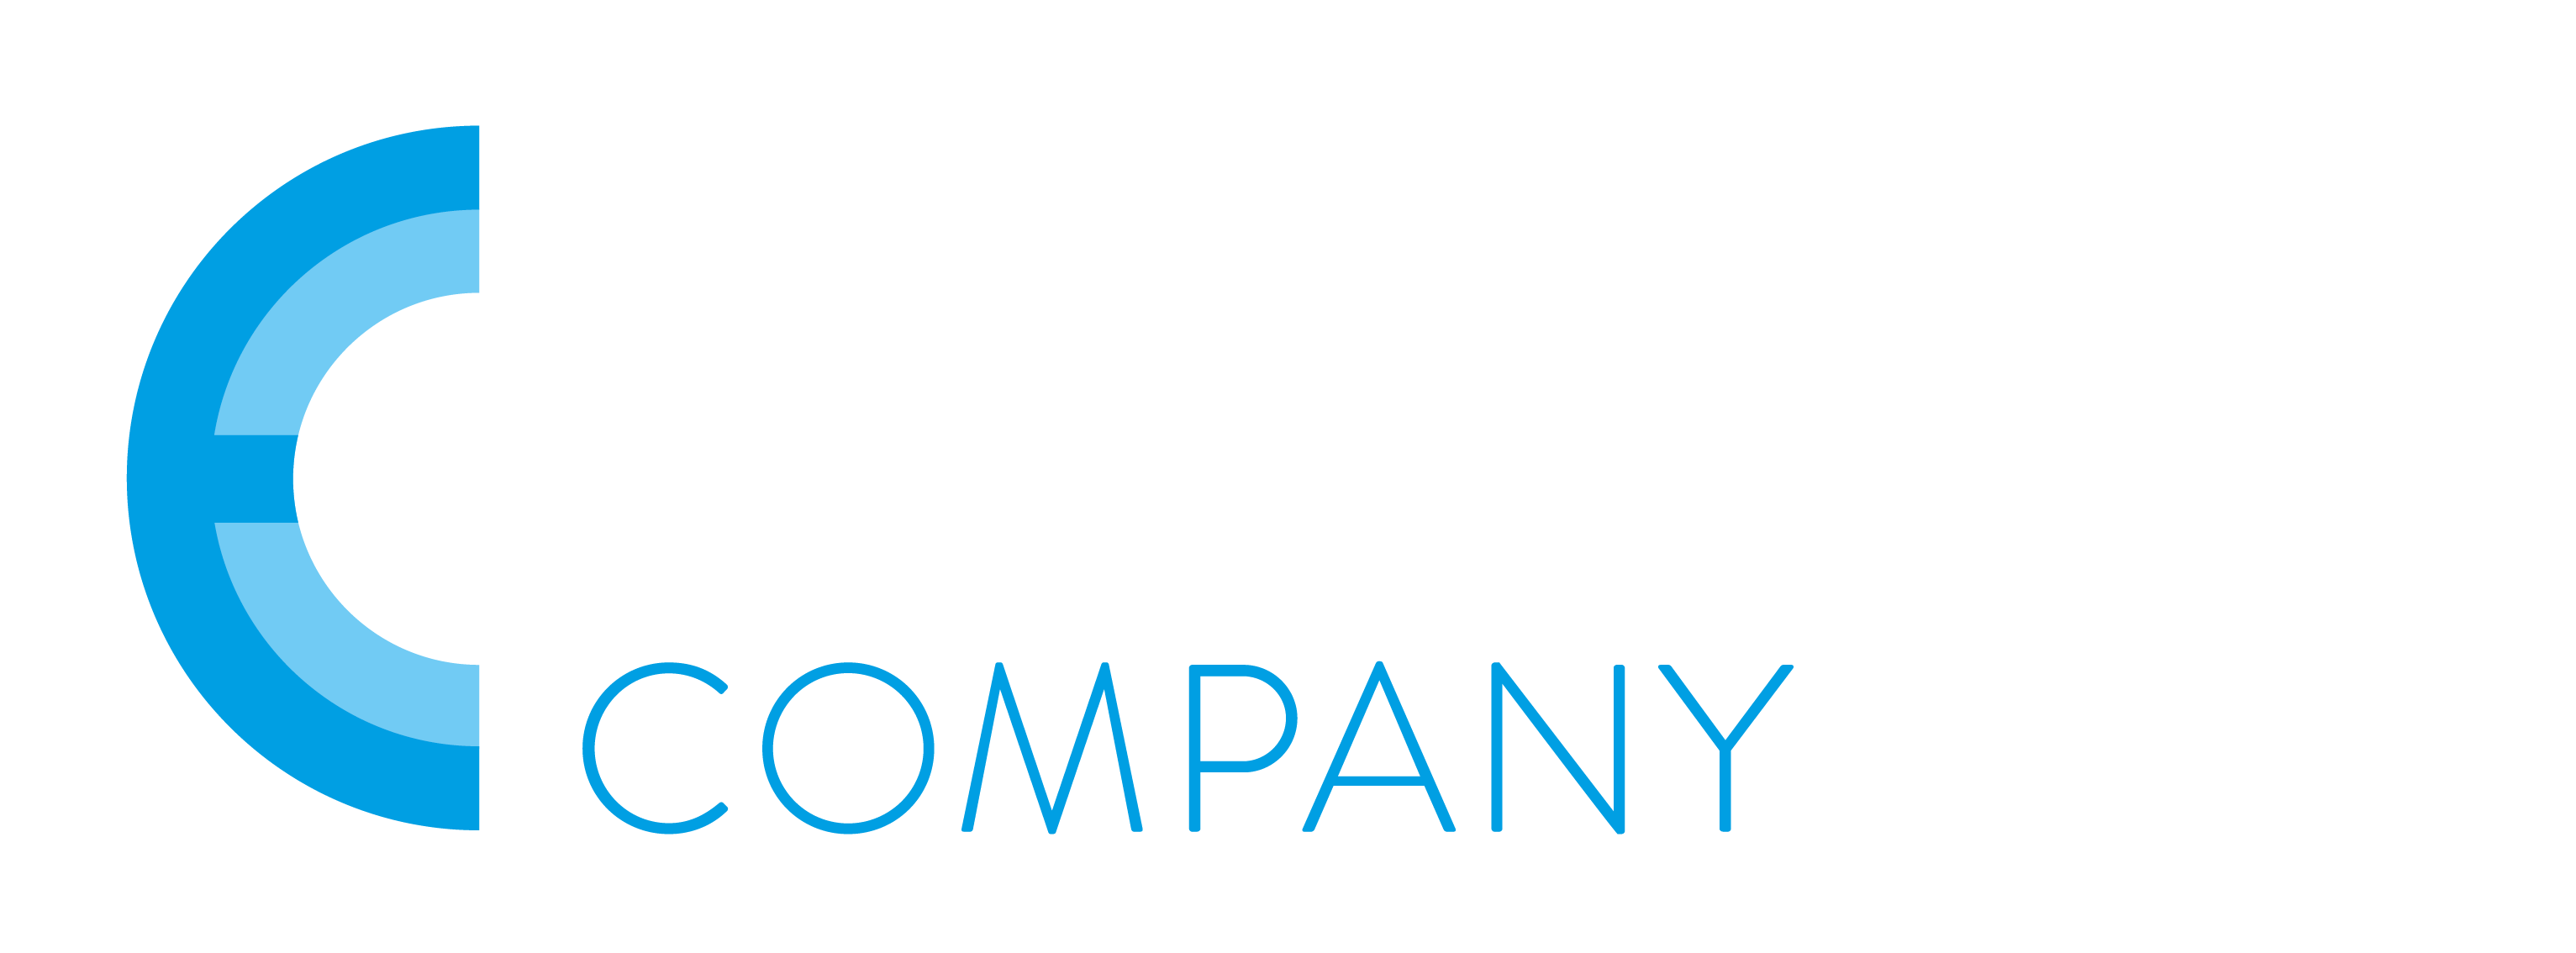 The Early Careers Company